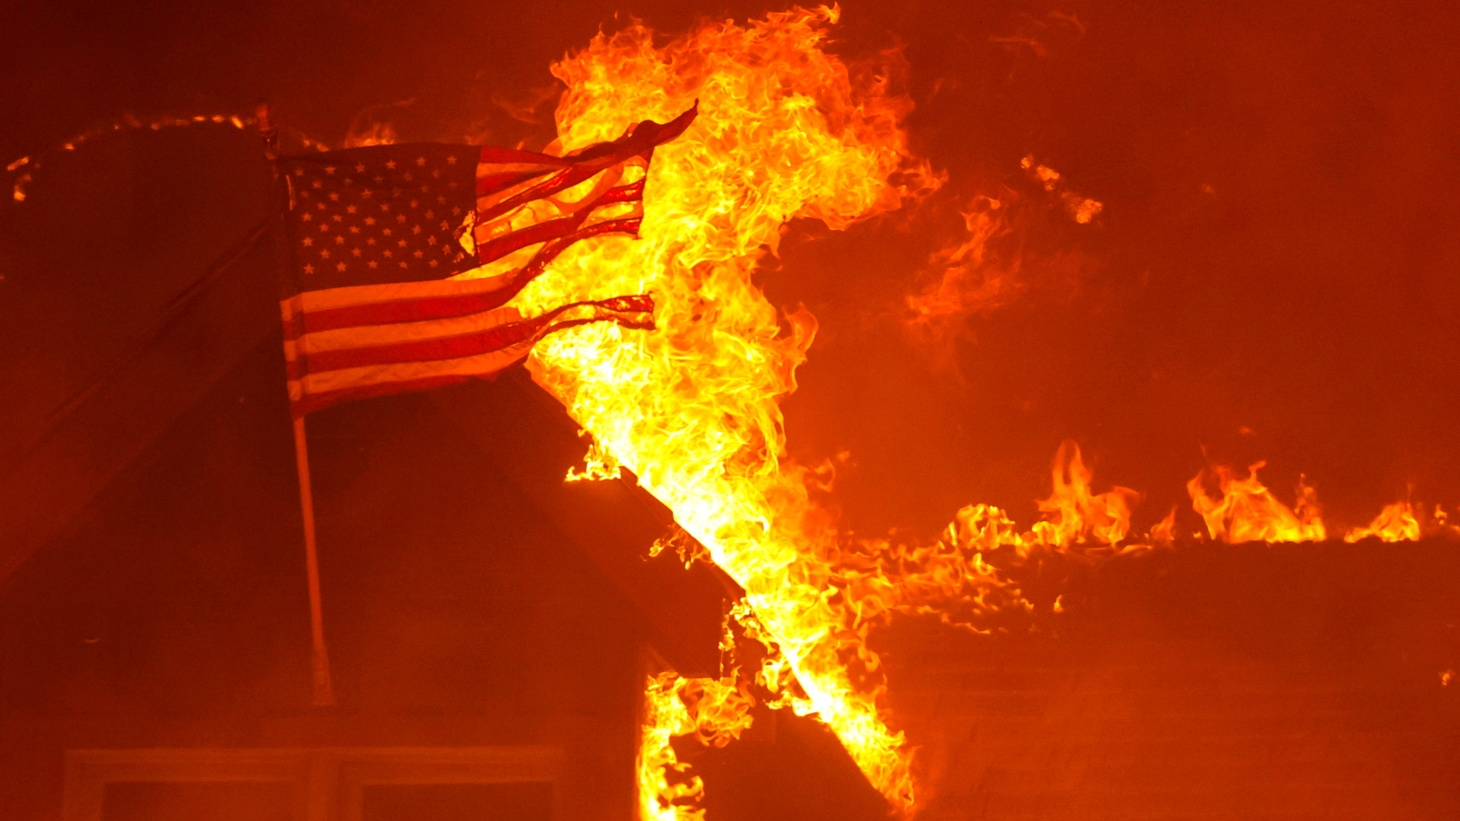 An American flag burns along with a cabin in the Caldor Fire near Phillips, California, U.S., August 29, 2021.